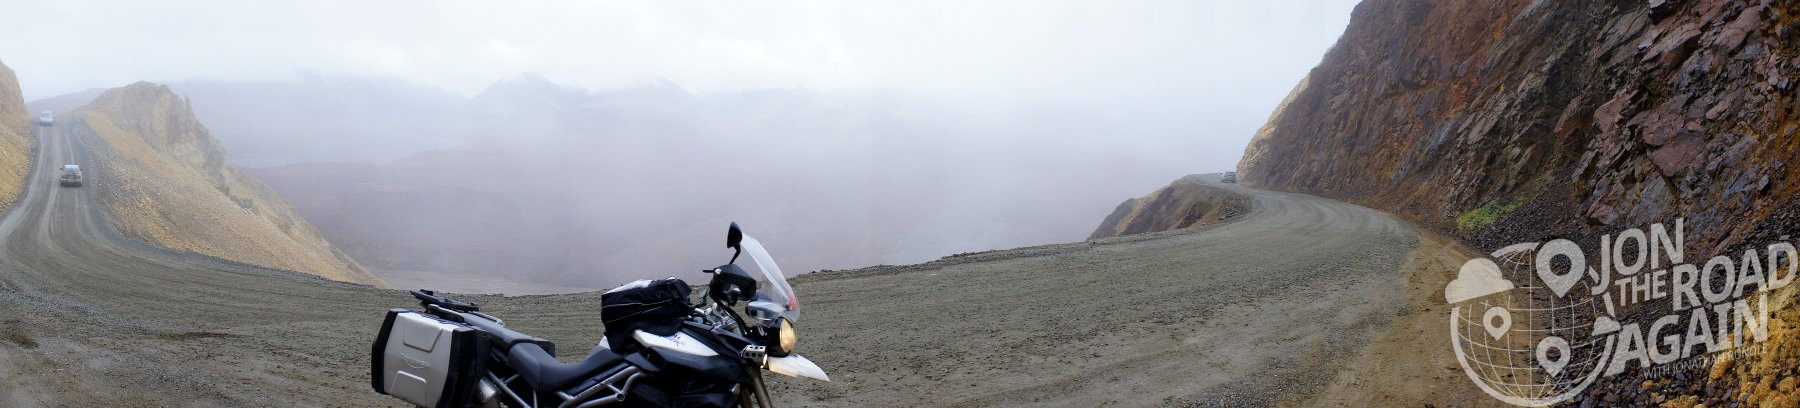 Polychrome pass on a motorcycle